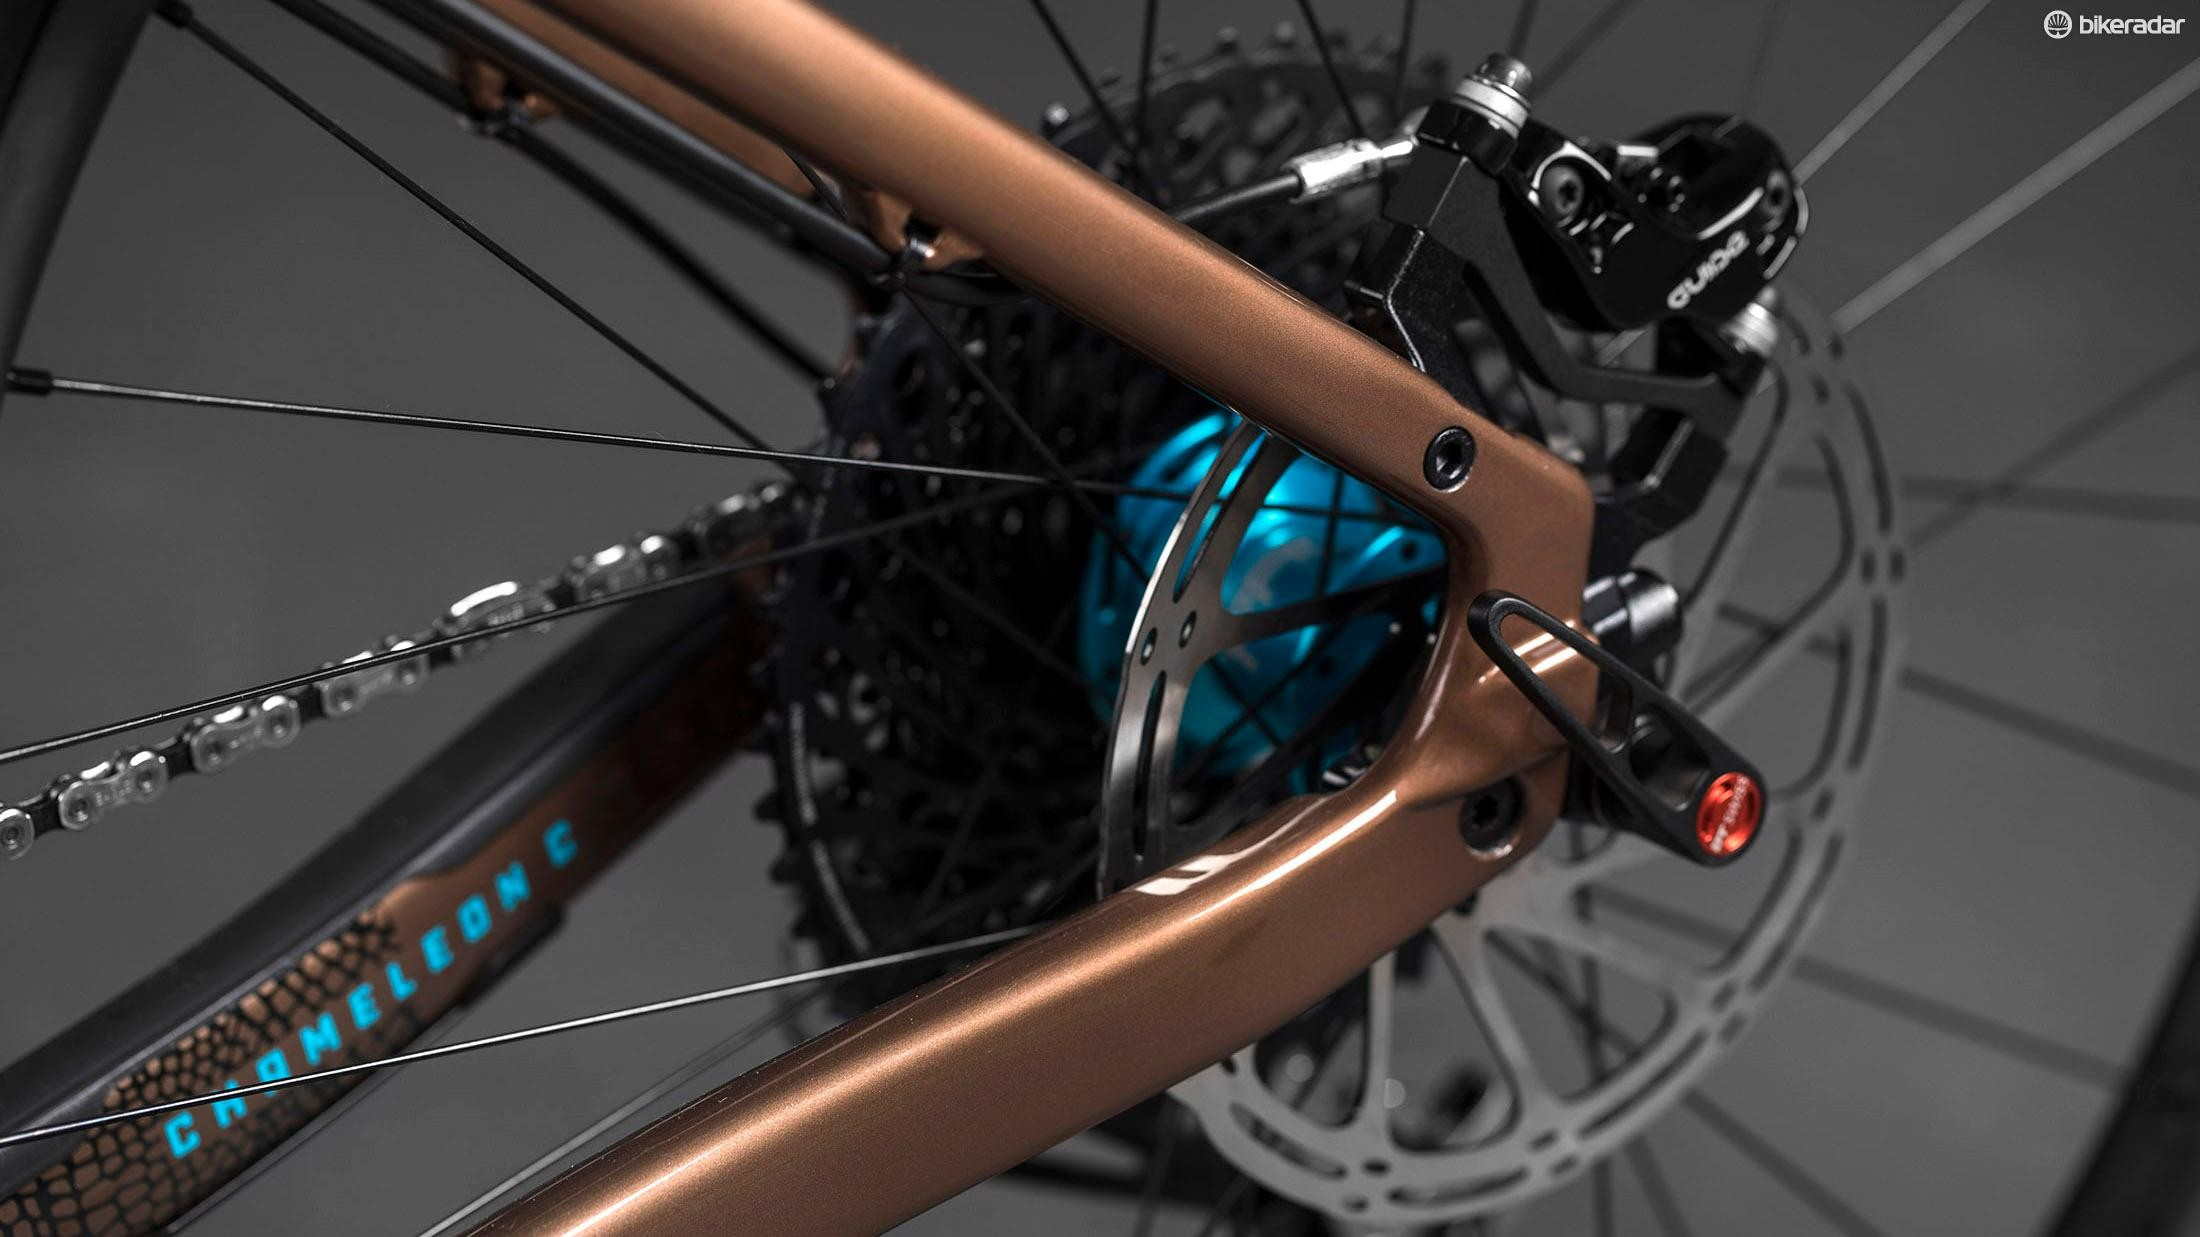 The dropouts can be changed for either singlespeed or geared setups